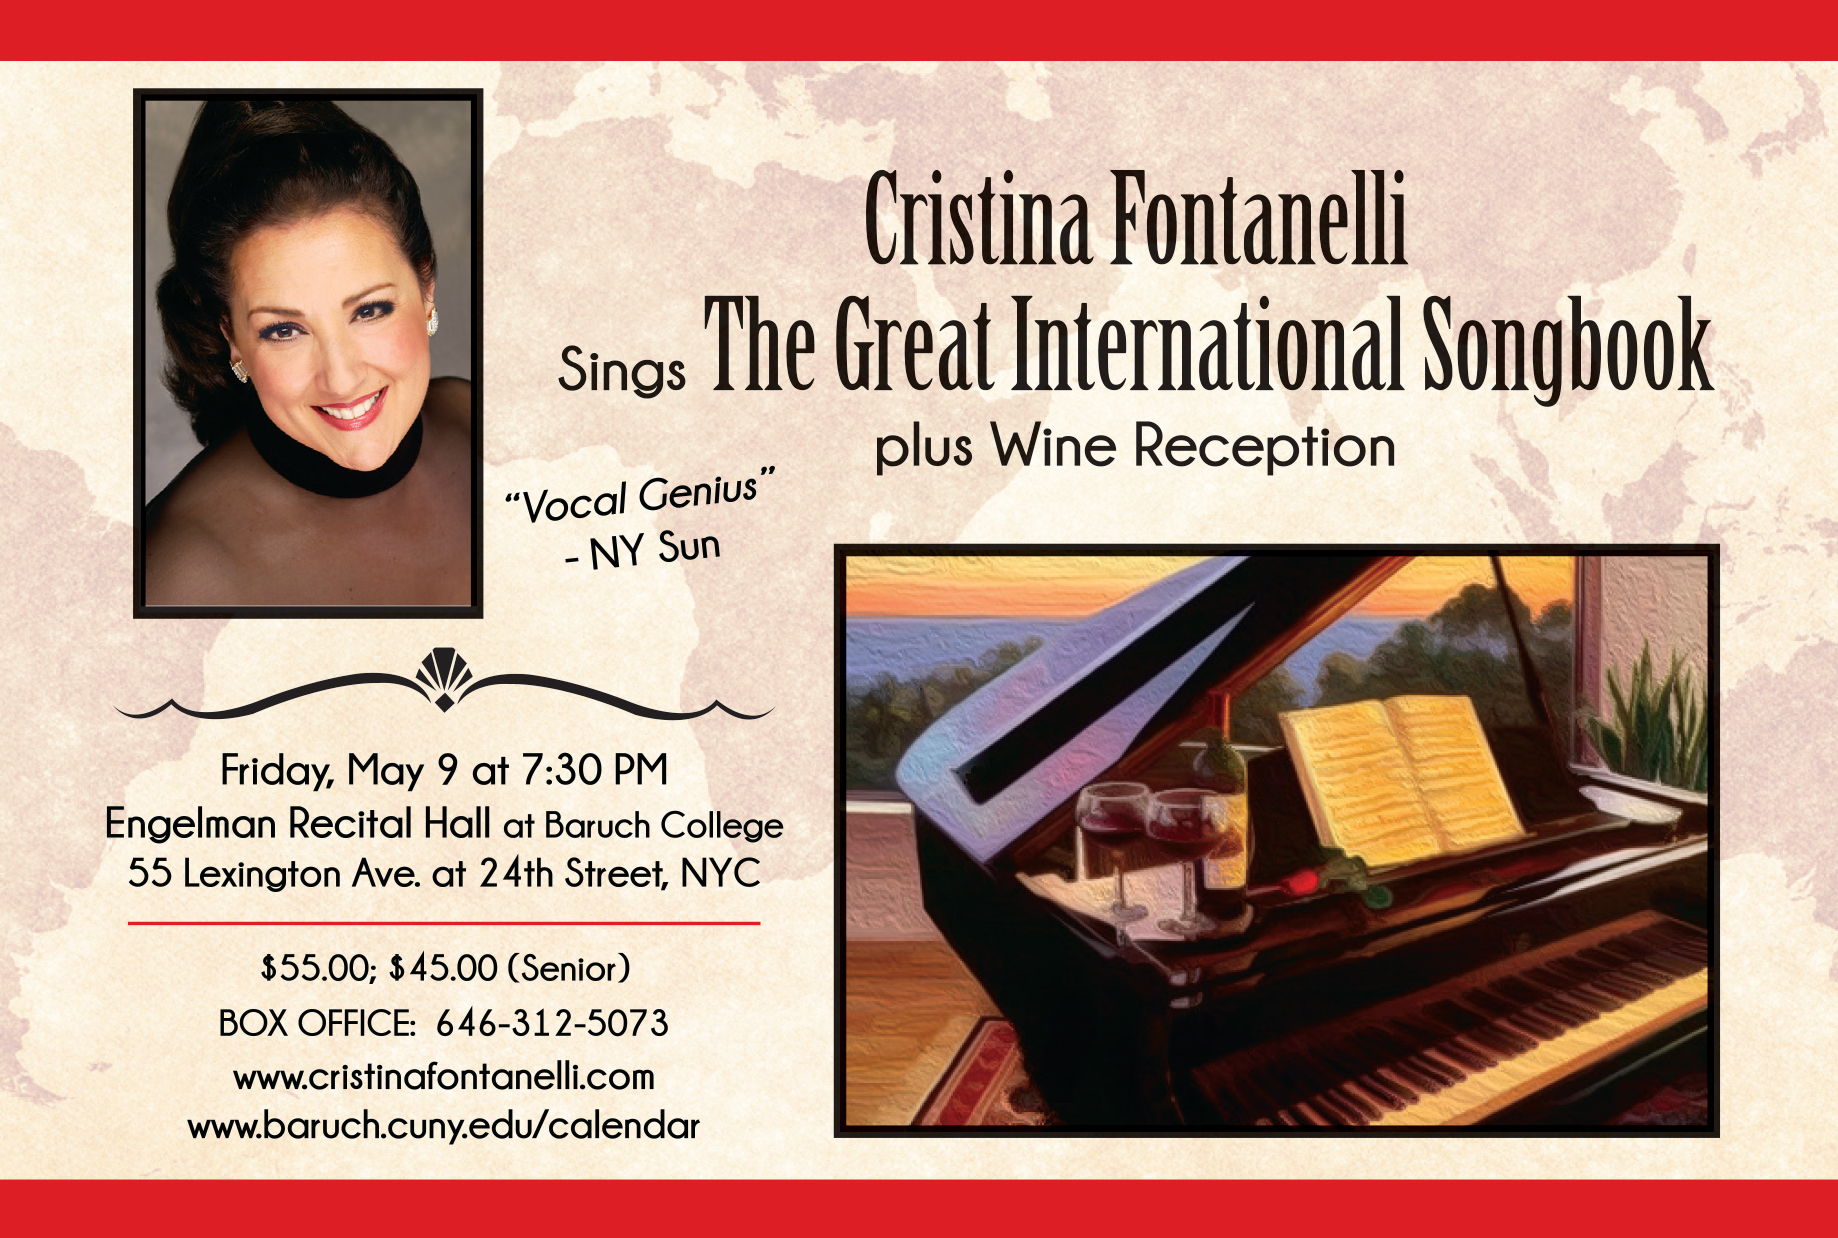 The Great International Songbook